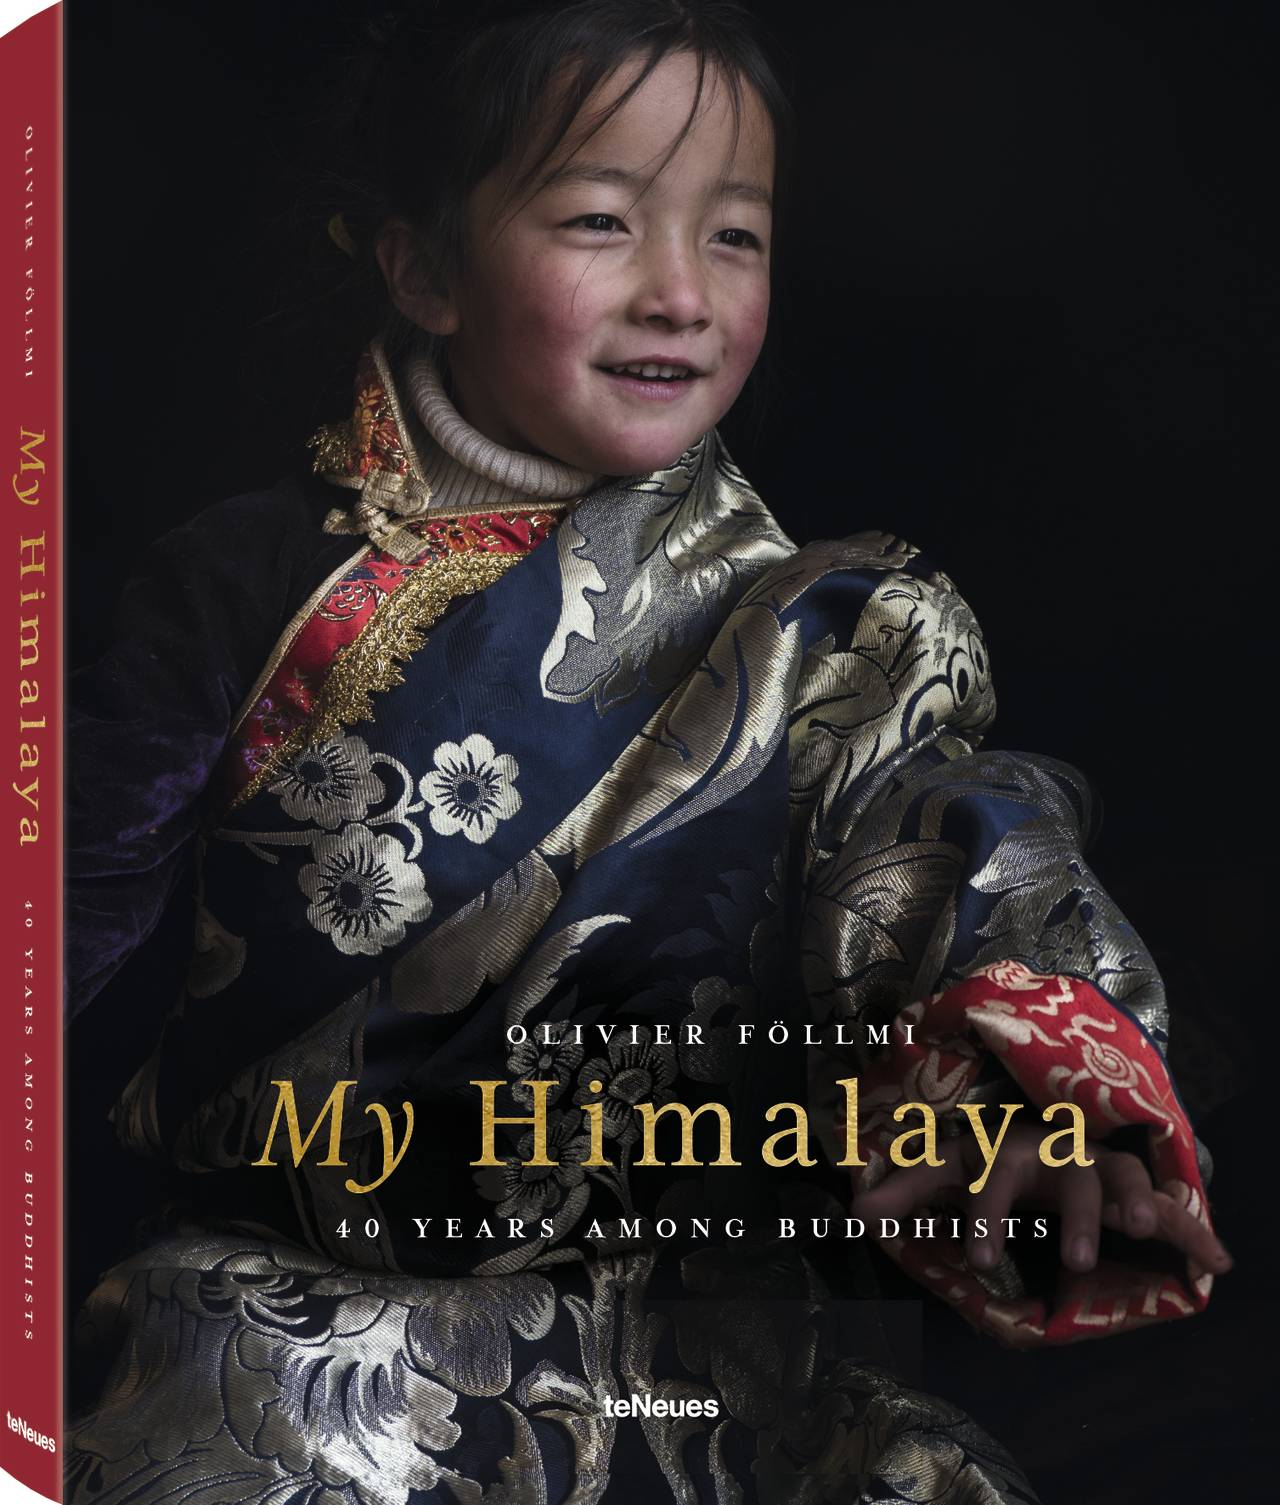 © My Himalaya - 40 Years among Buddhists by Olivier Föllmi, published by teNeues, www.teneues.com, Photo © 2018 Olivier Föllmi. All rights reserved. www.olivier-follmi.net